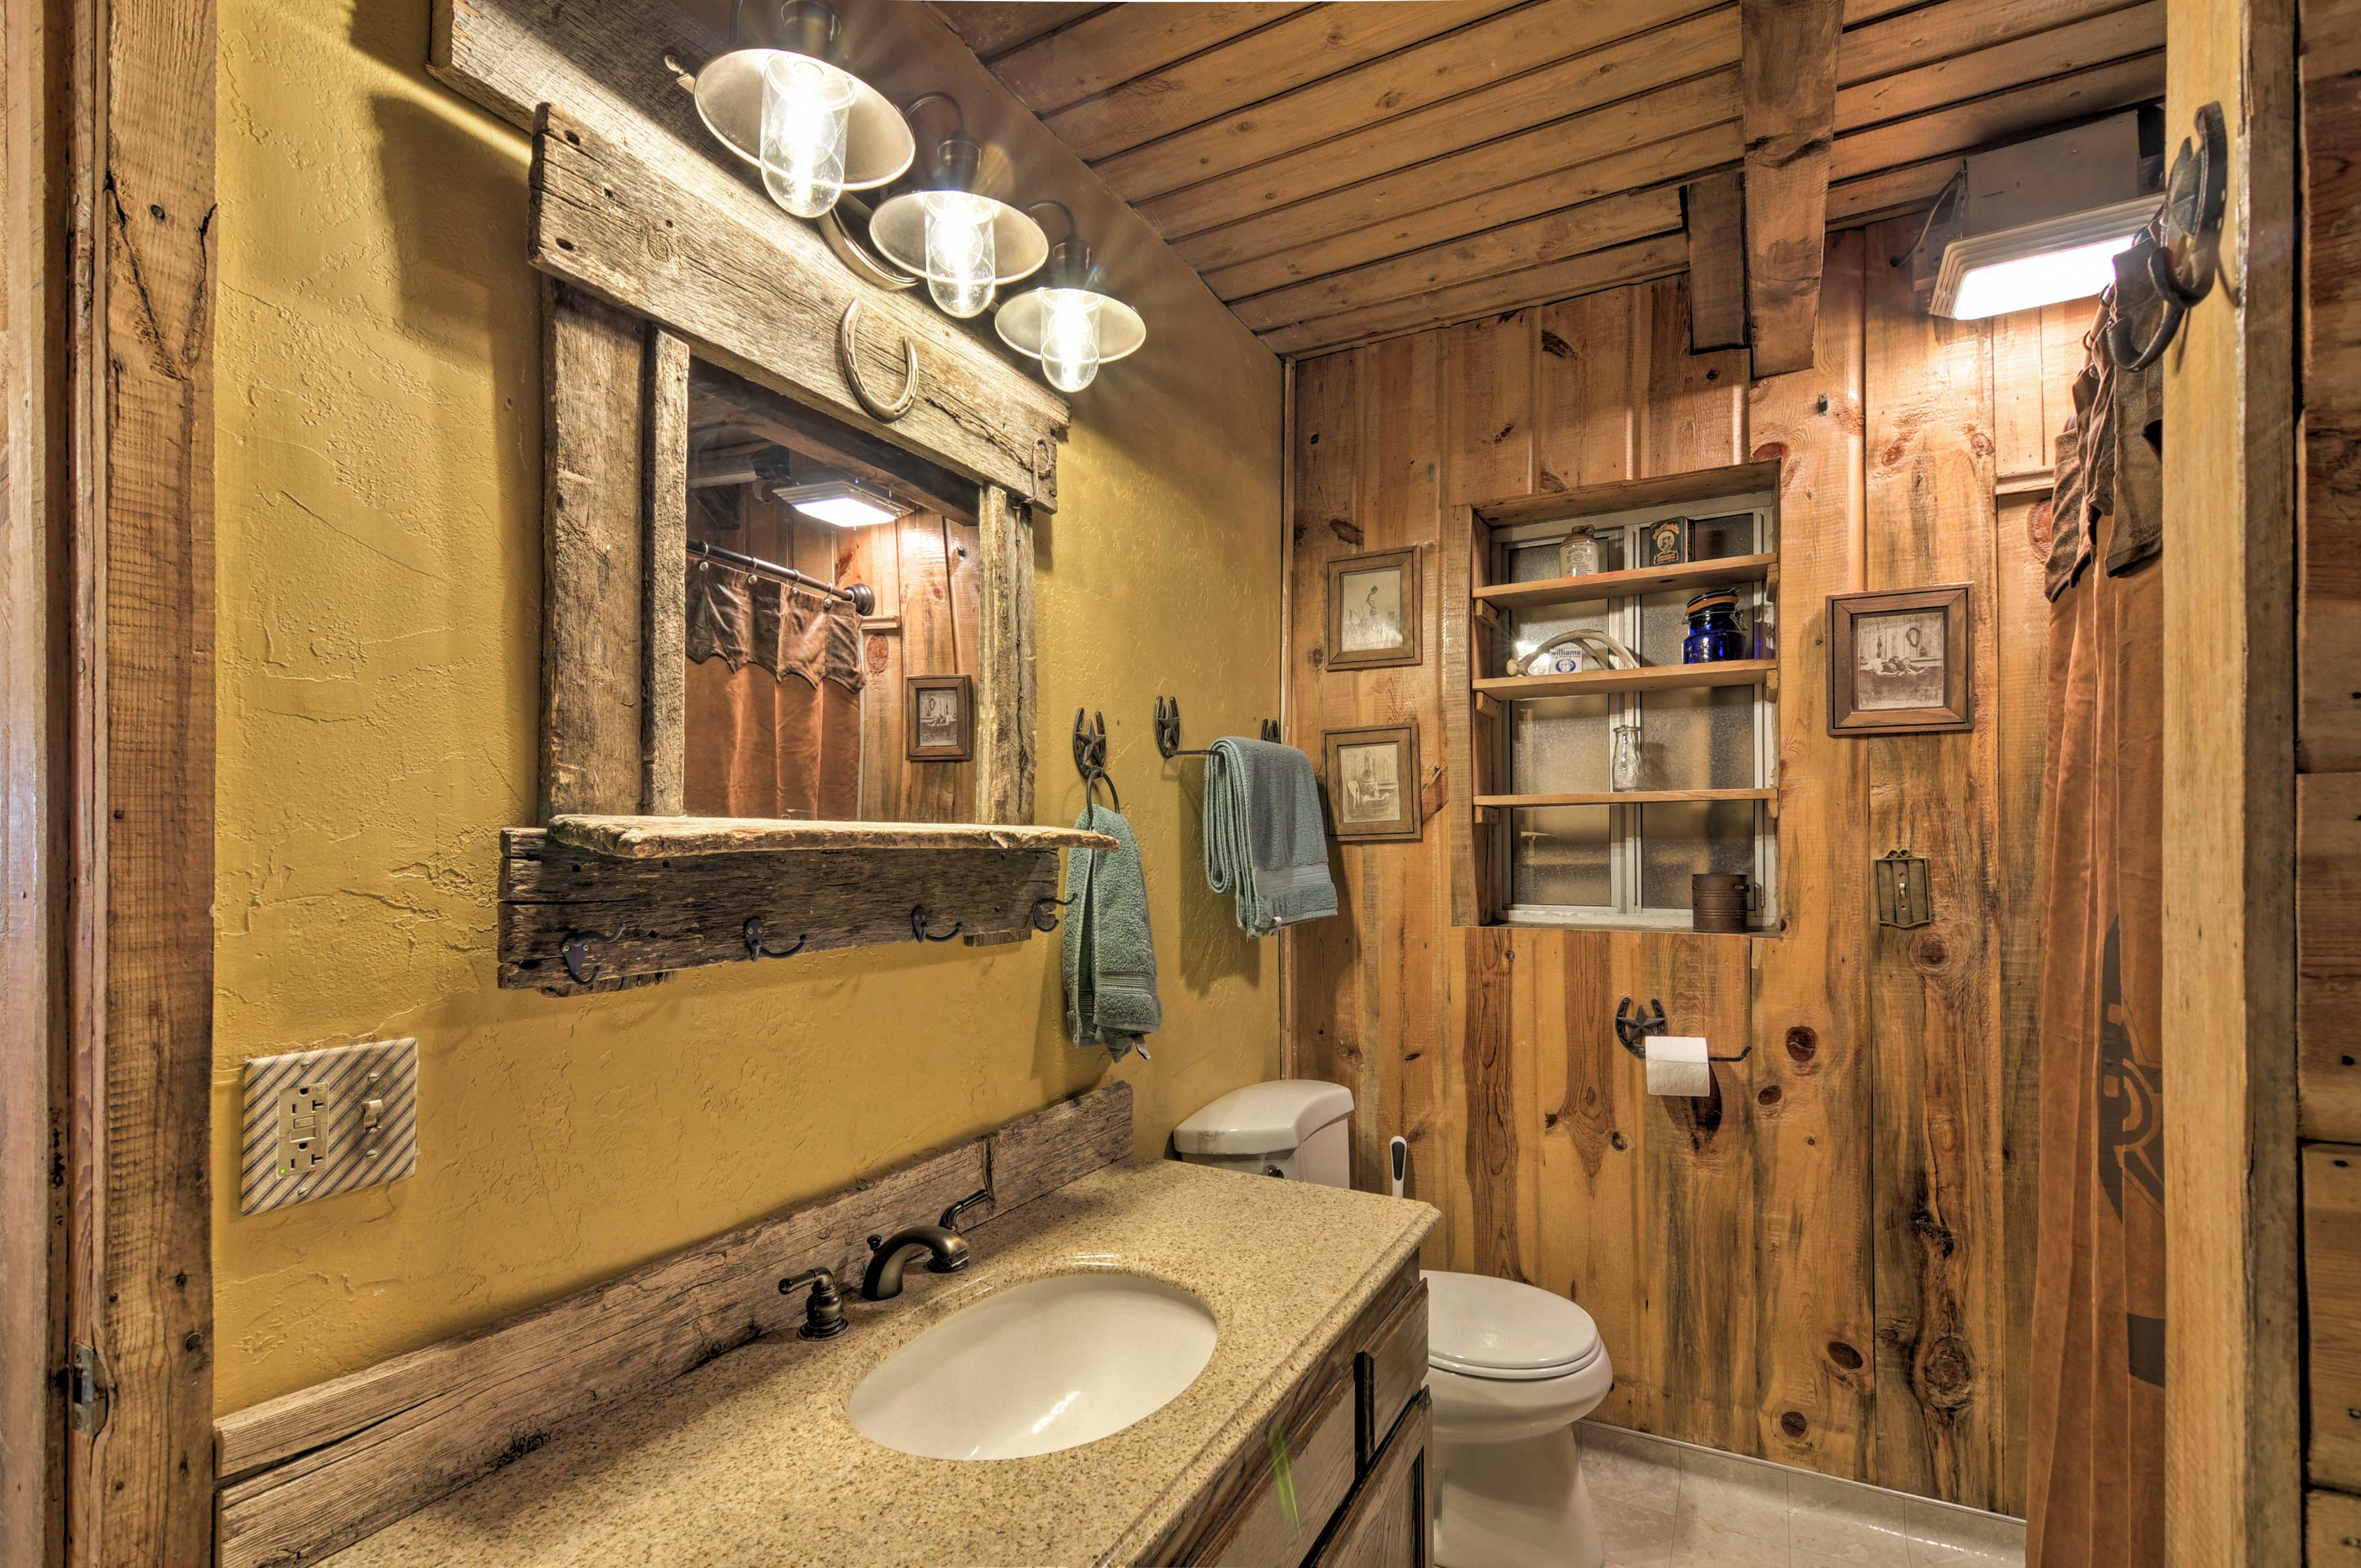 This home has 3 full bathrooms.